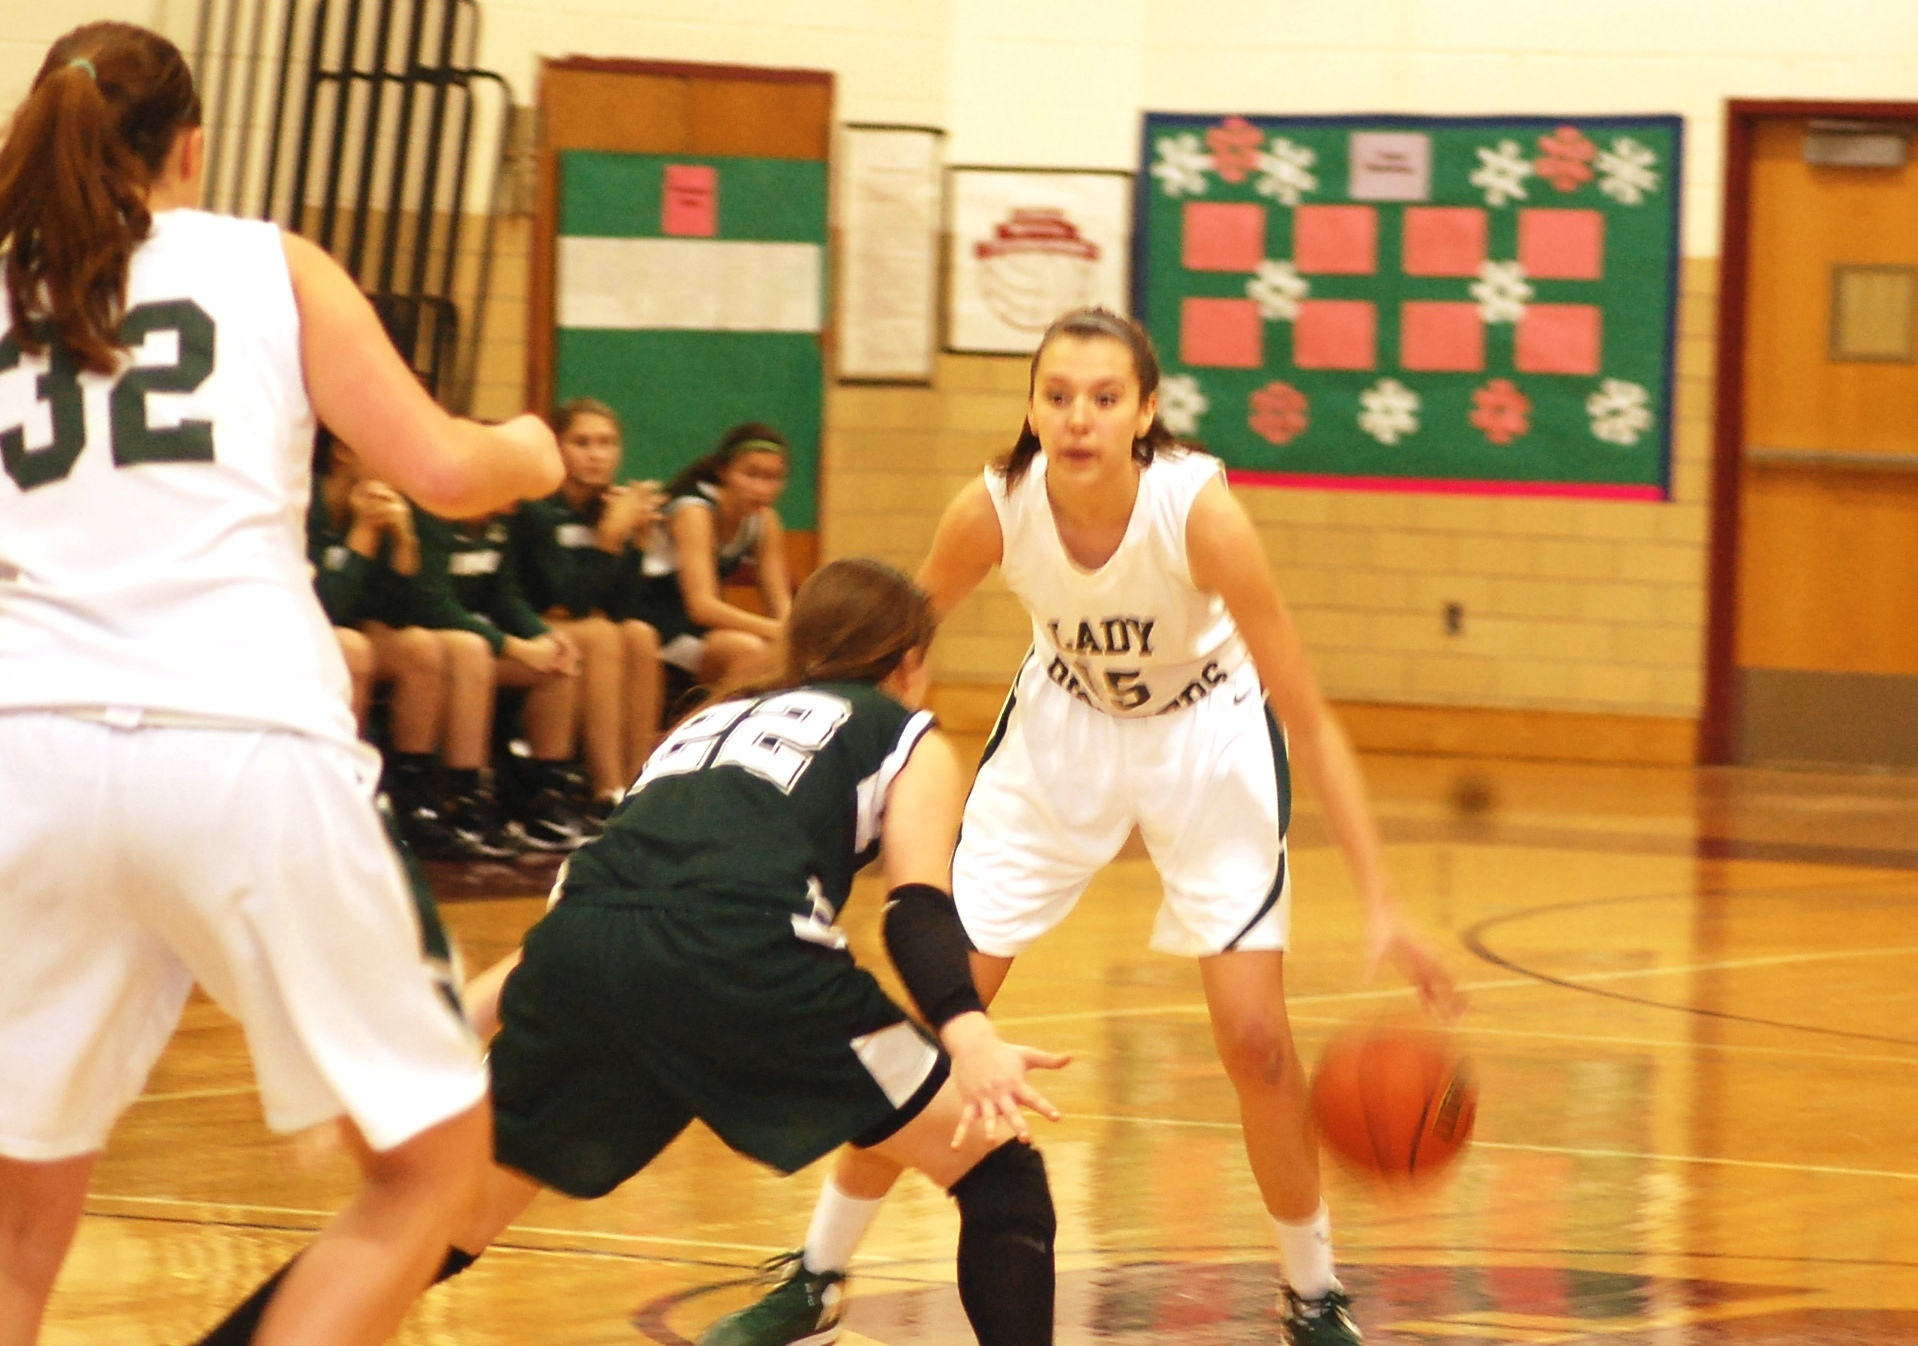 81c31cfec0f82b3f3d1f_New_Providence_v_Livingston_girls_hoops_12-26__Trey_180.jpg